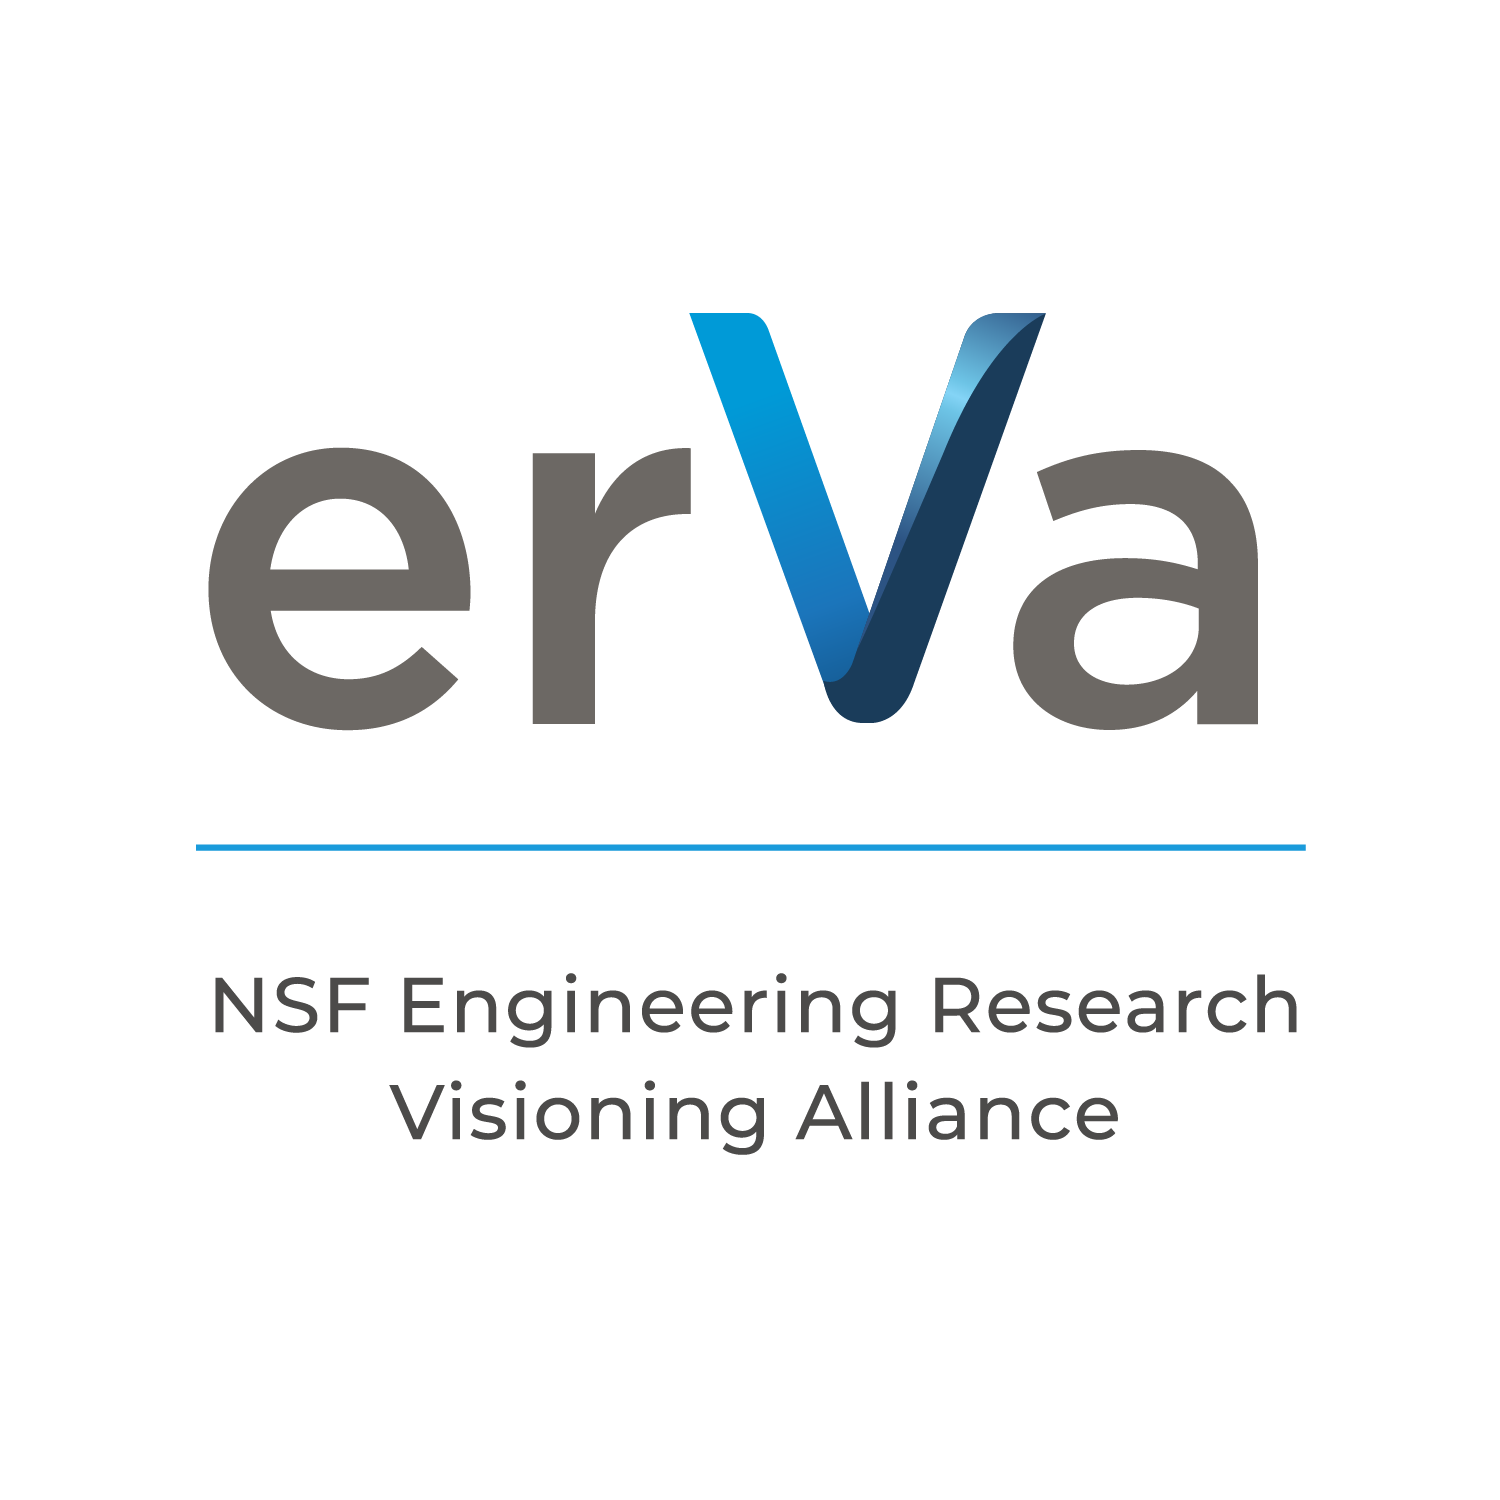 Engineering Research Visioning Alliance: ERVA